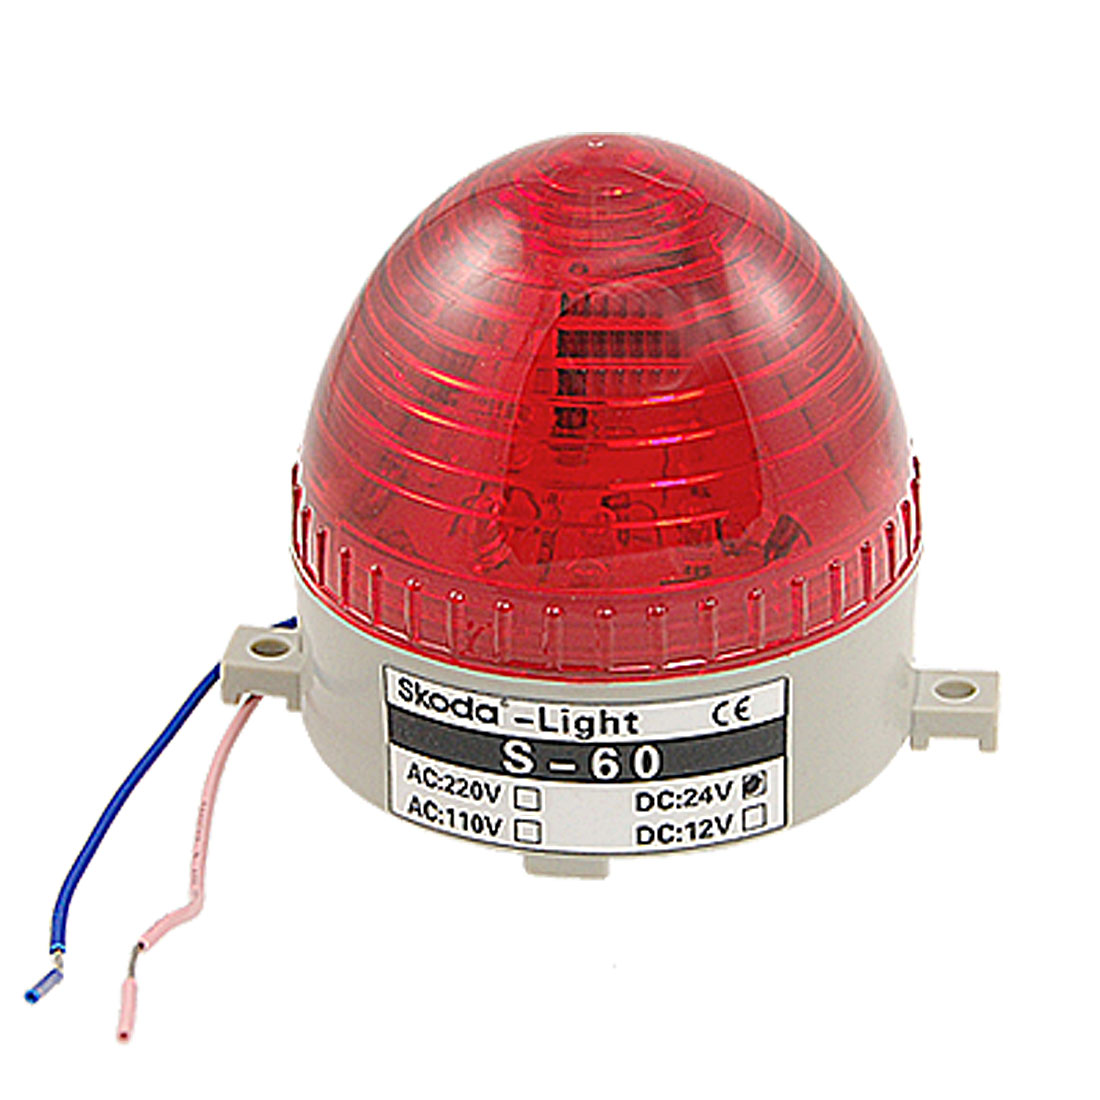 DC 24V Wired Red LED Light Industrial Warning Alarm Signal Lamp